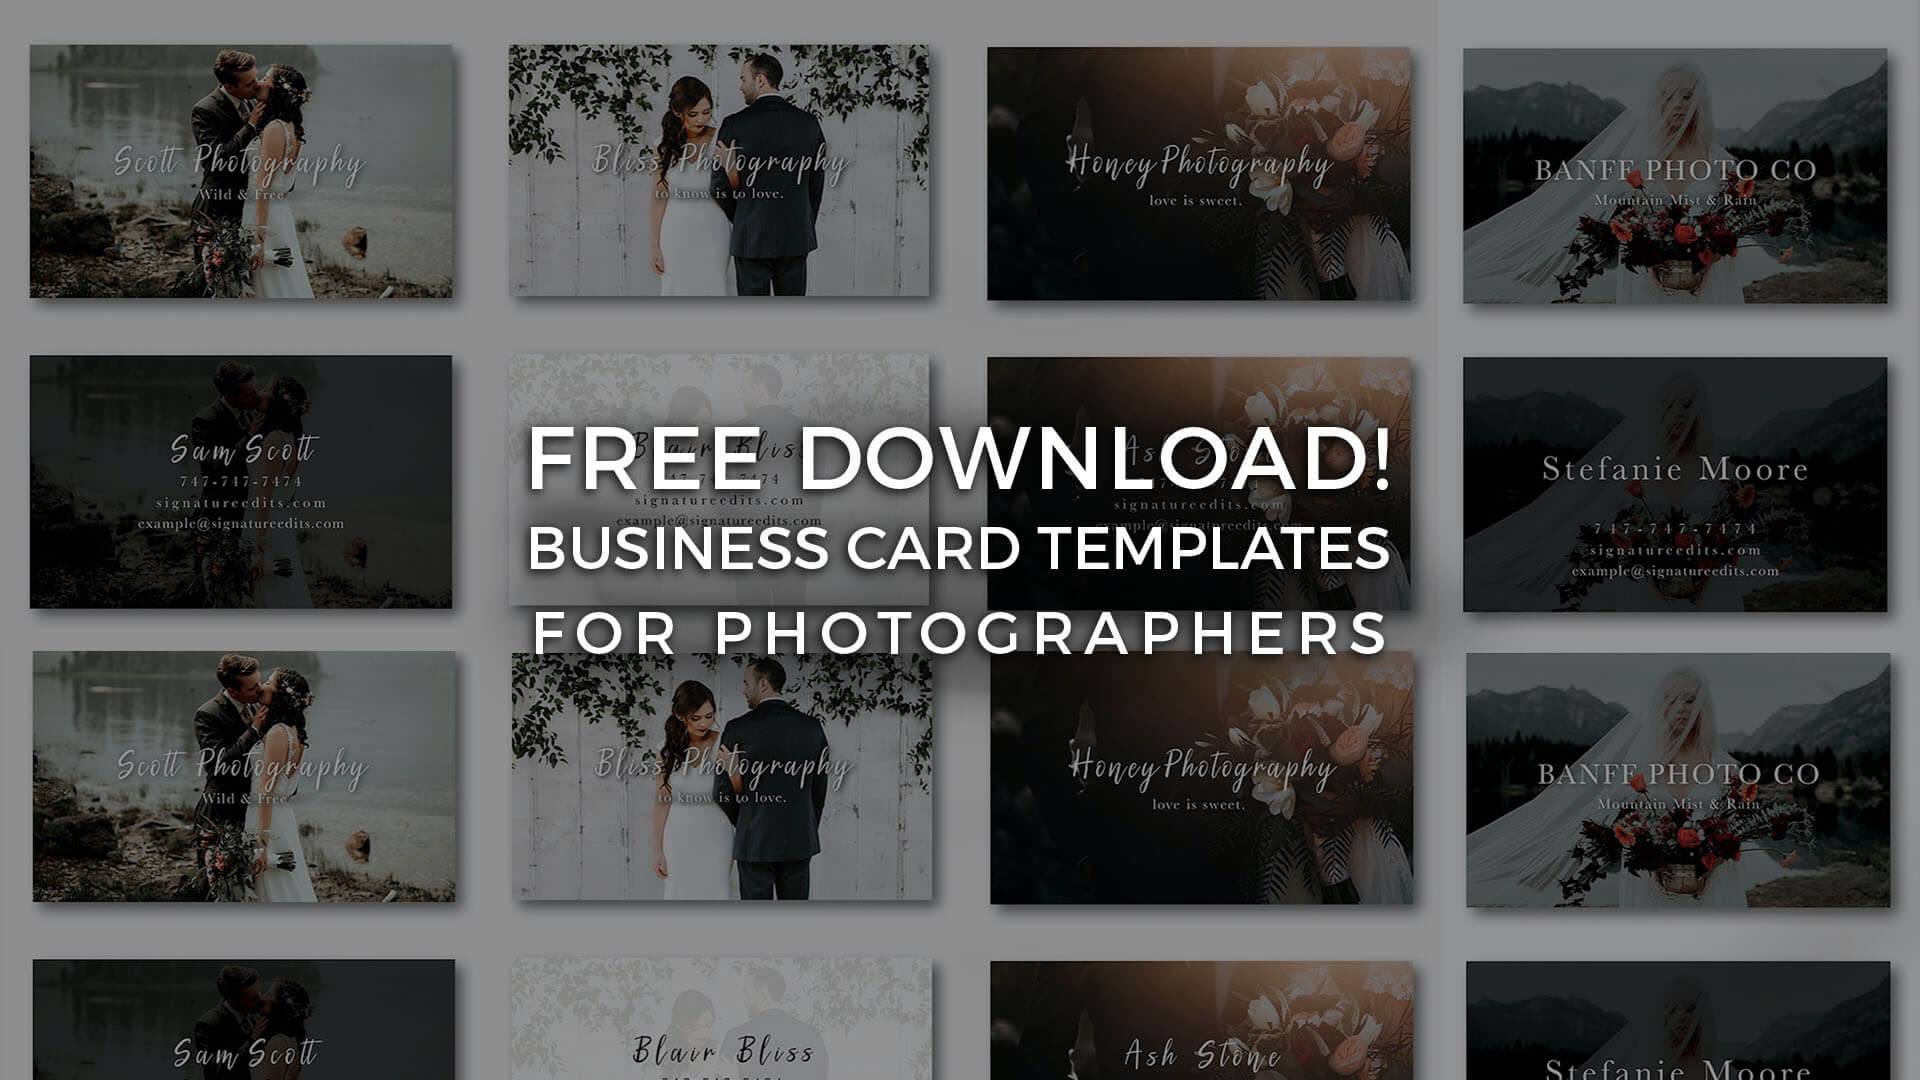 Free Photographer Business Card Templates! - Signature Edits Pertaining To Free Business Card Templates For Photographers